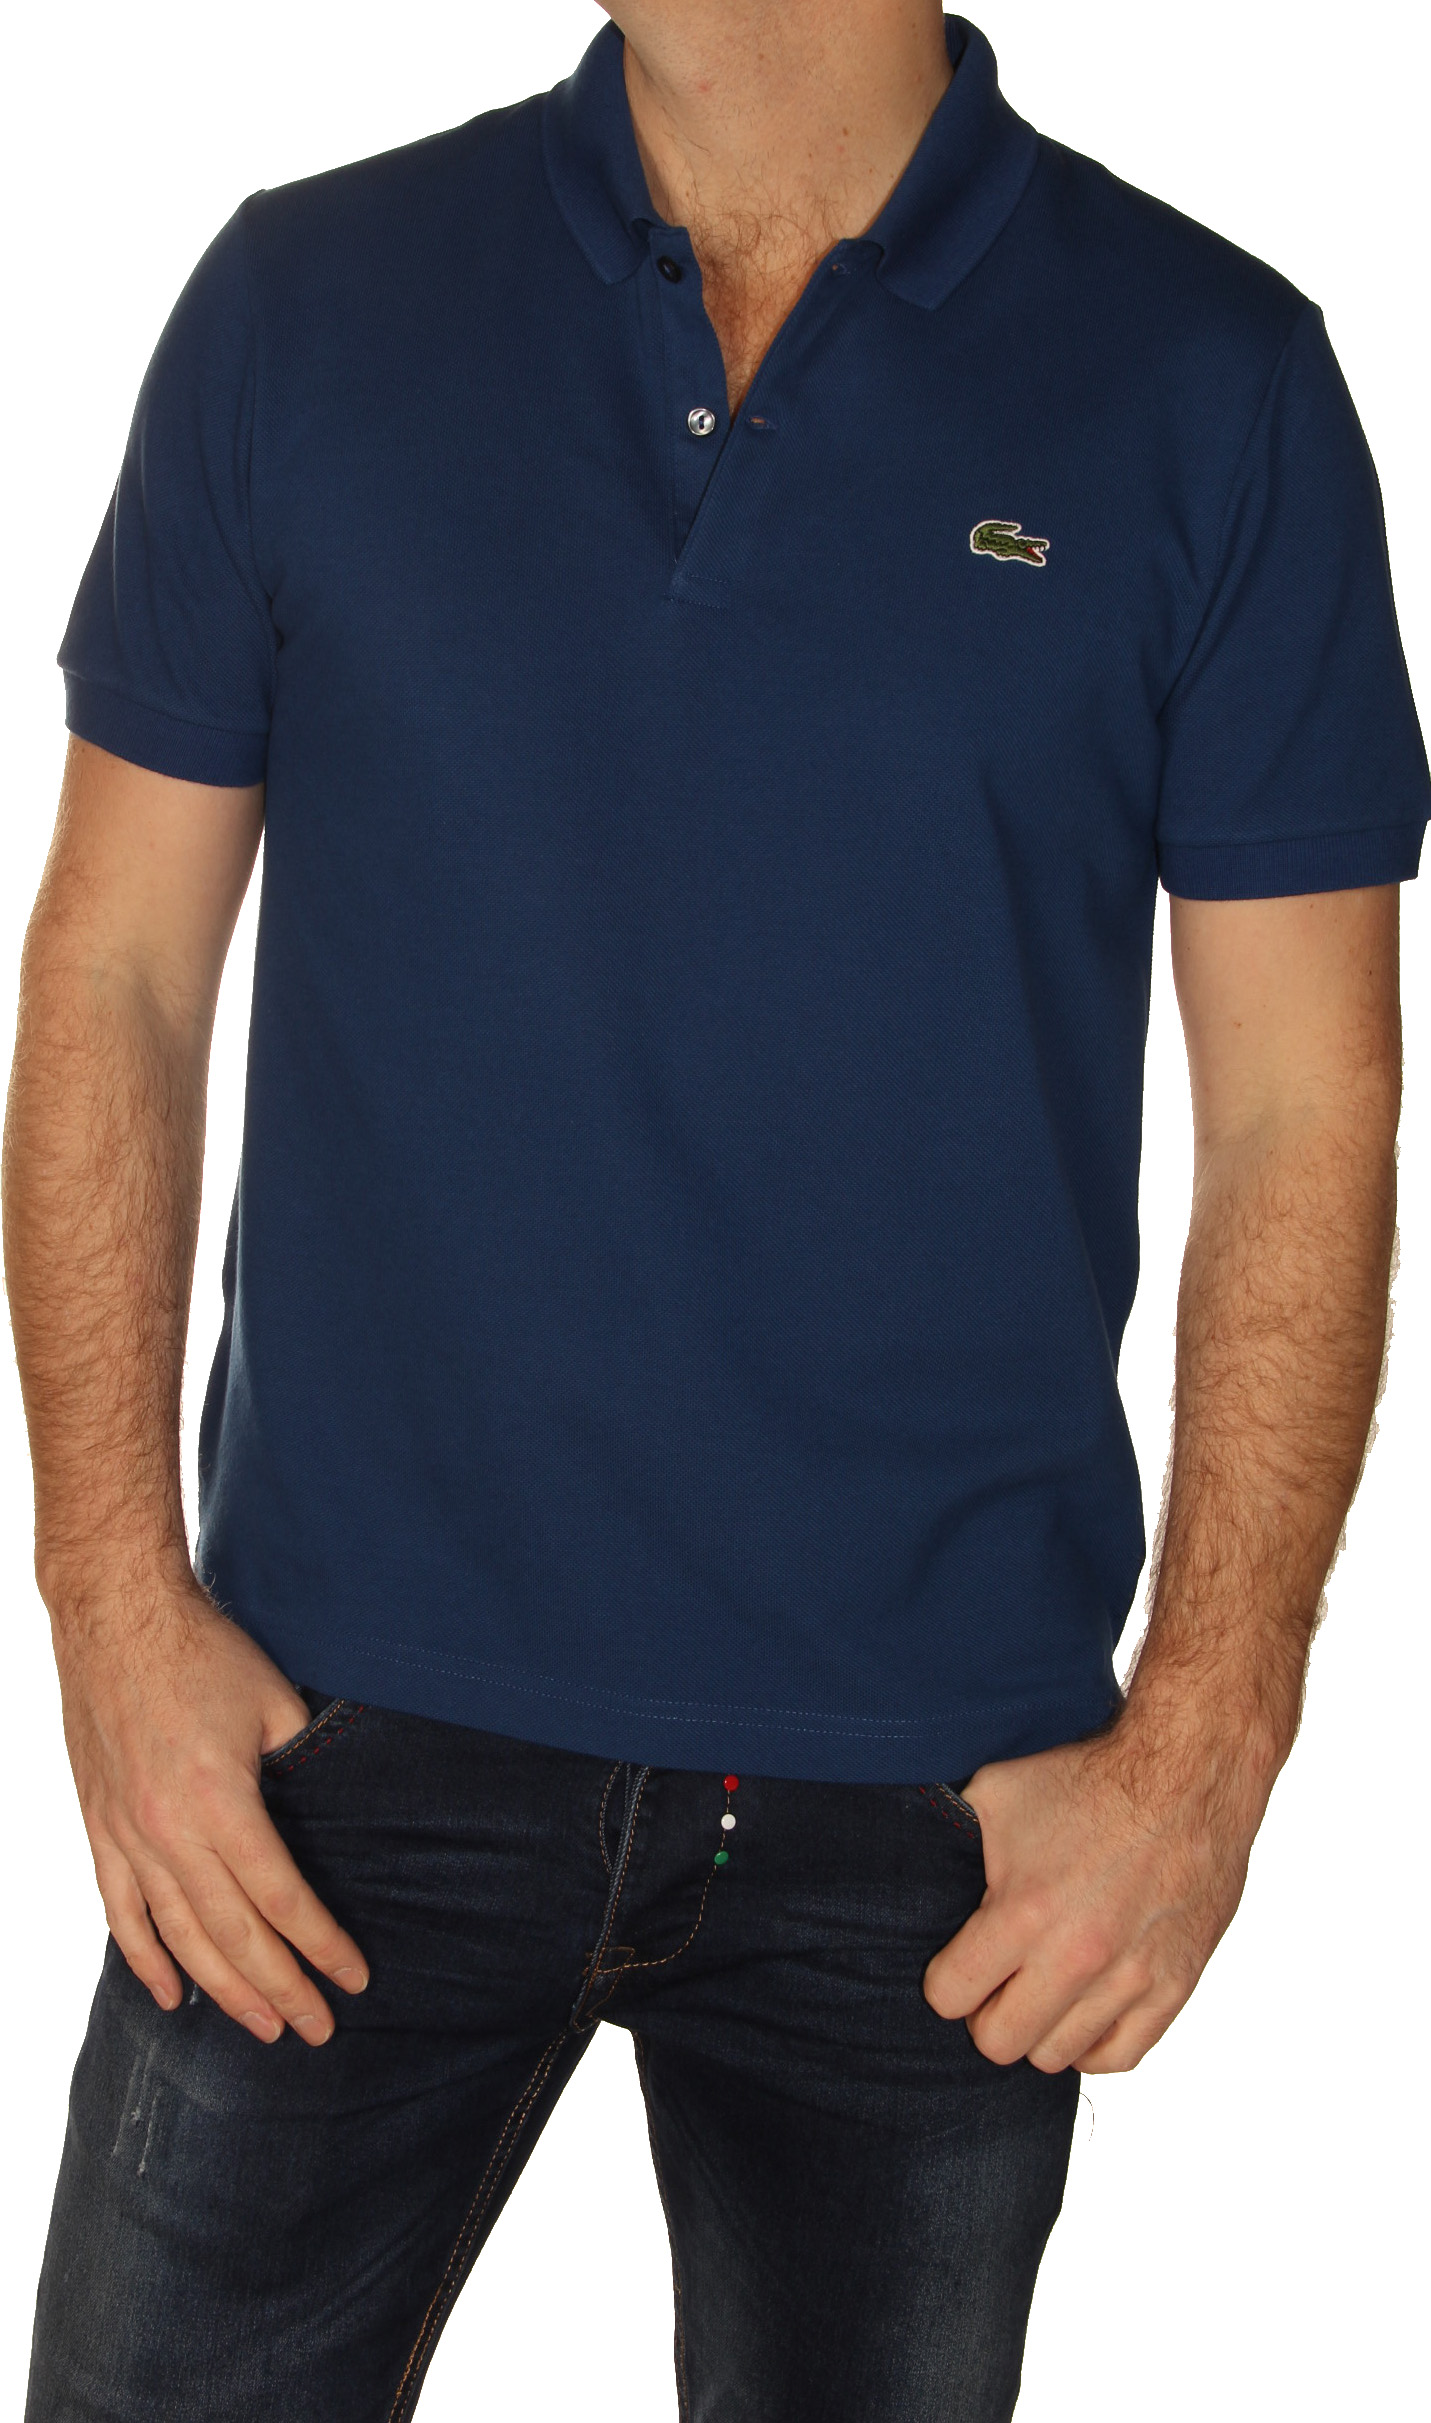 upload/product_display_image/201302/lacoste_ph2403_encrier_a.jpg